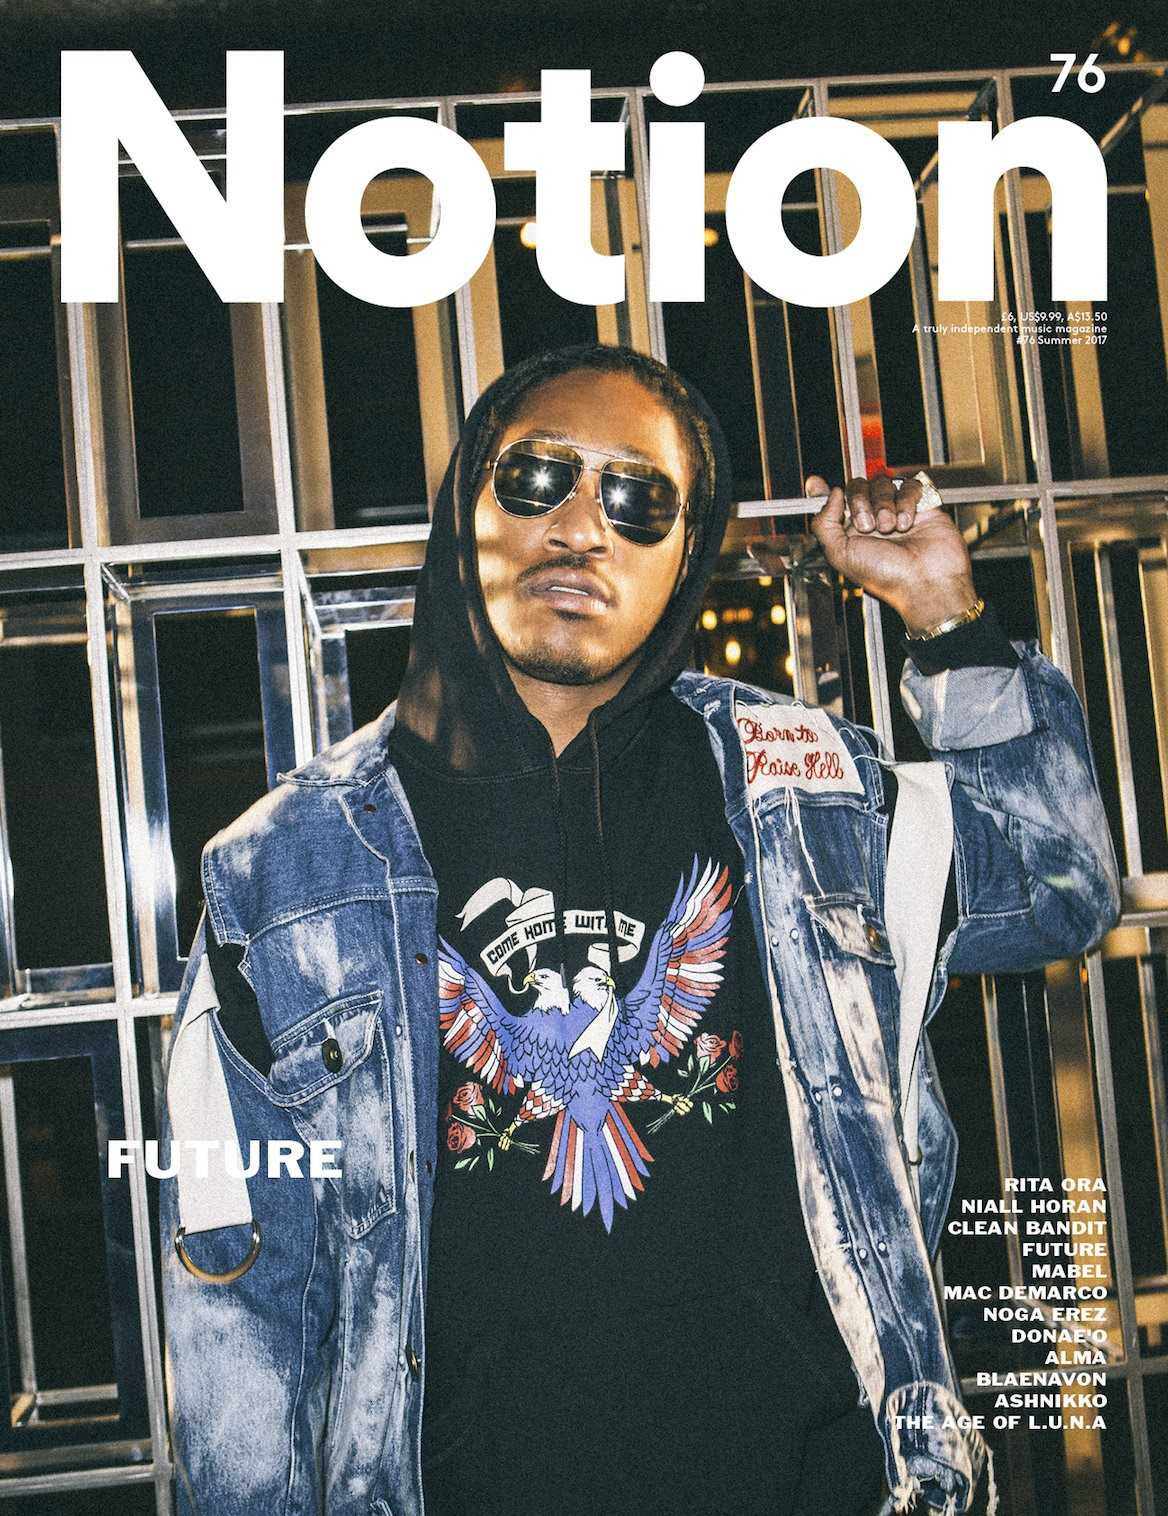 King of the ATL, Future Covers Notion 76 [Magazine Cover]